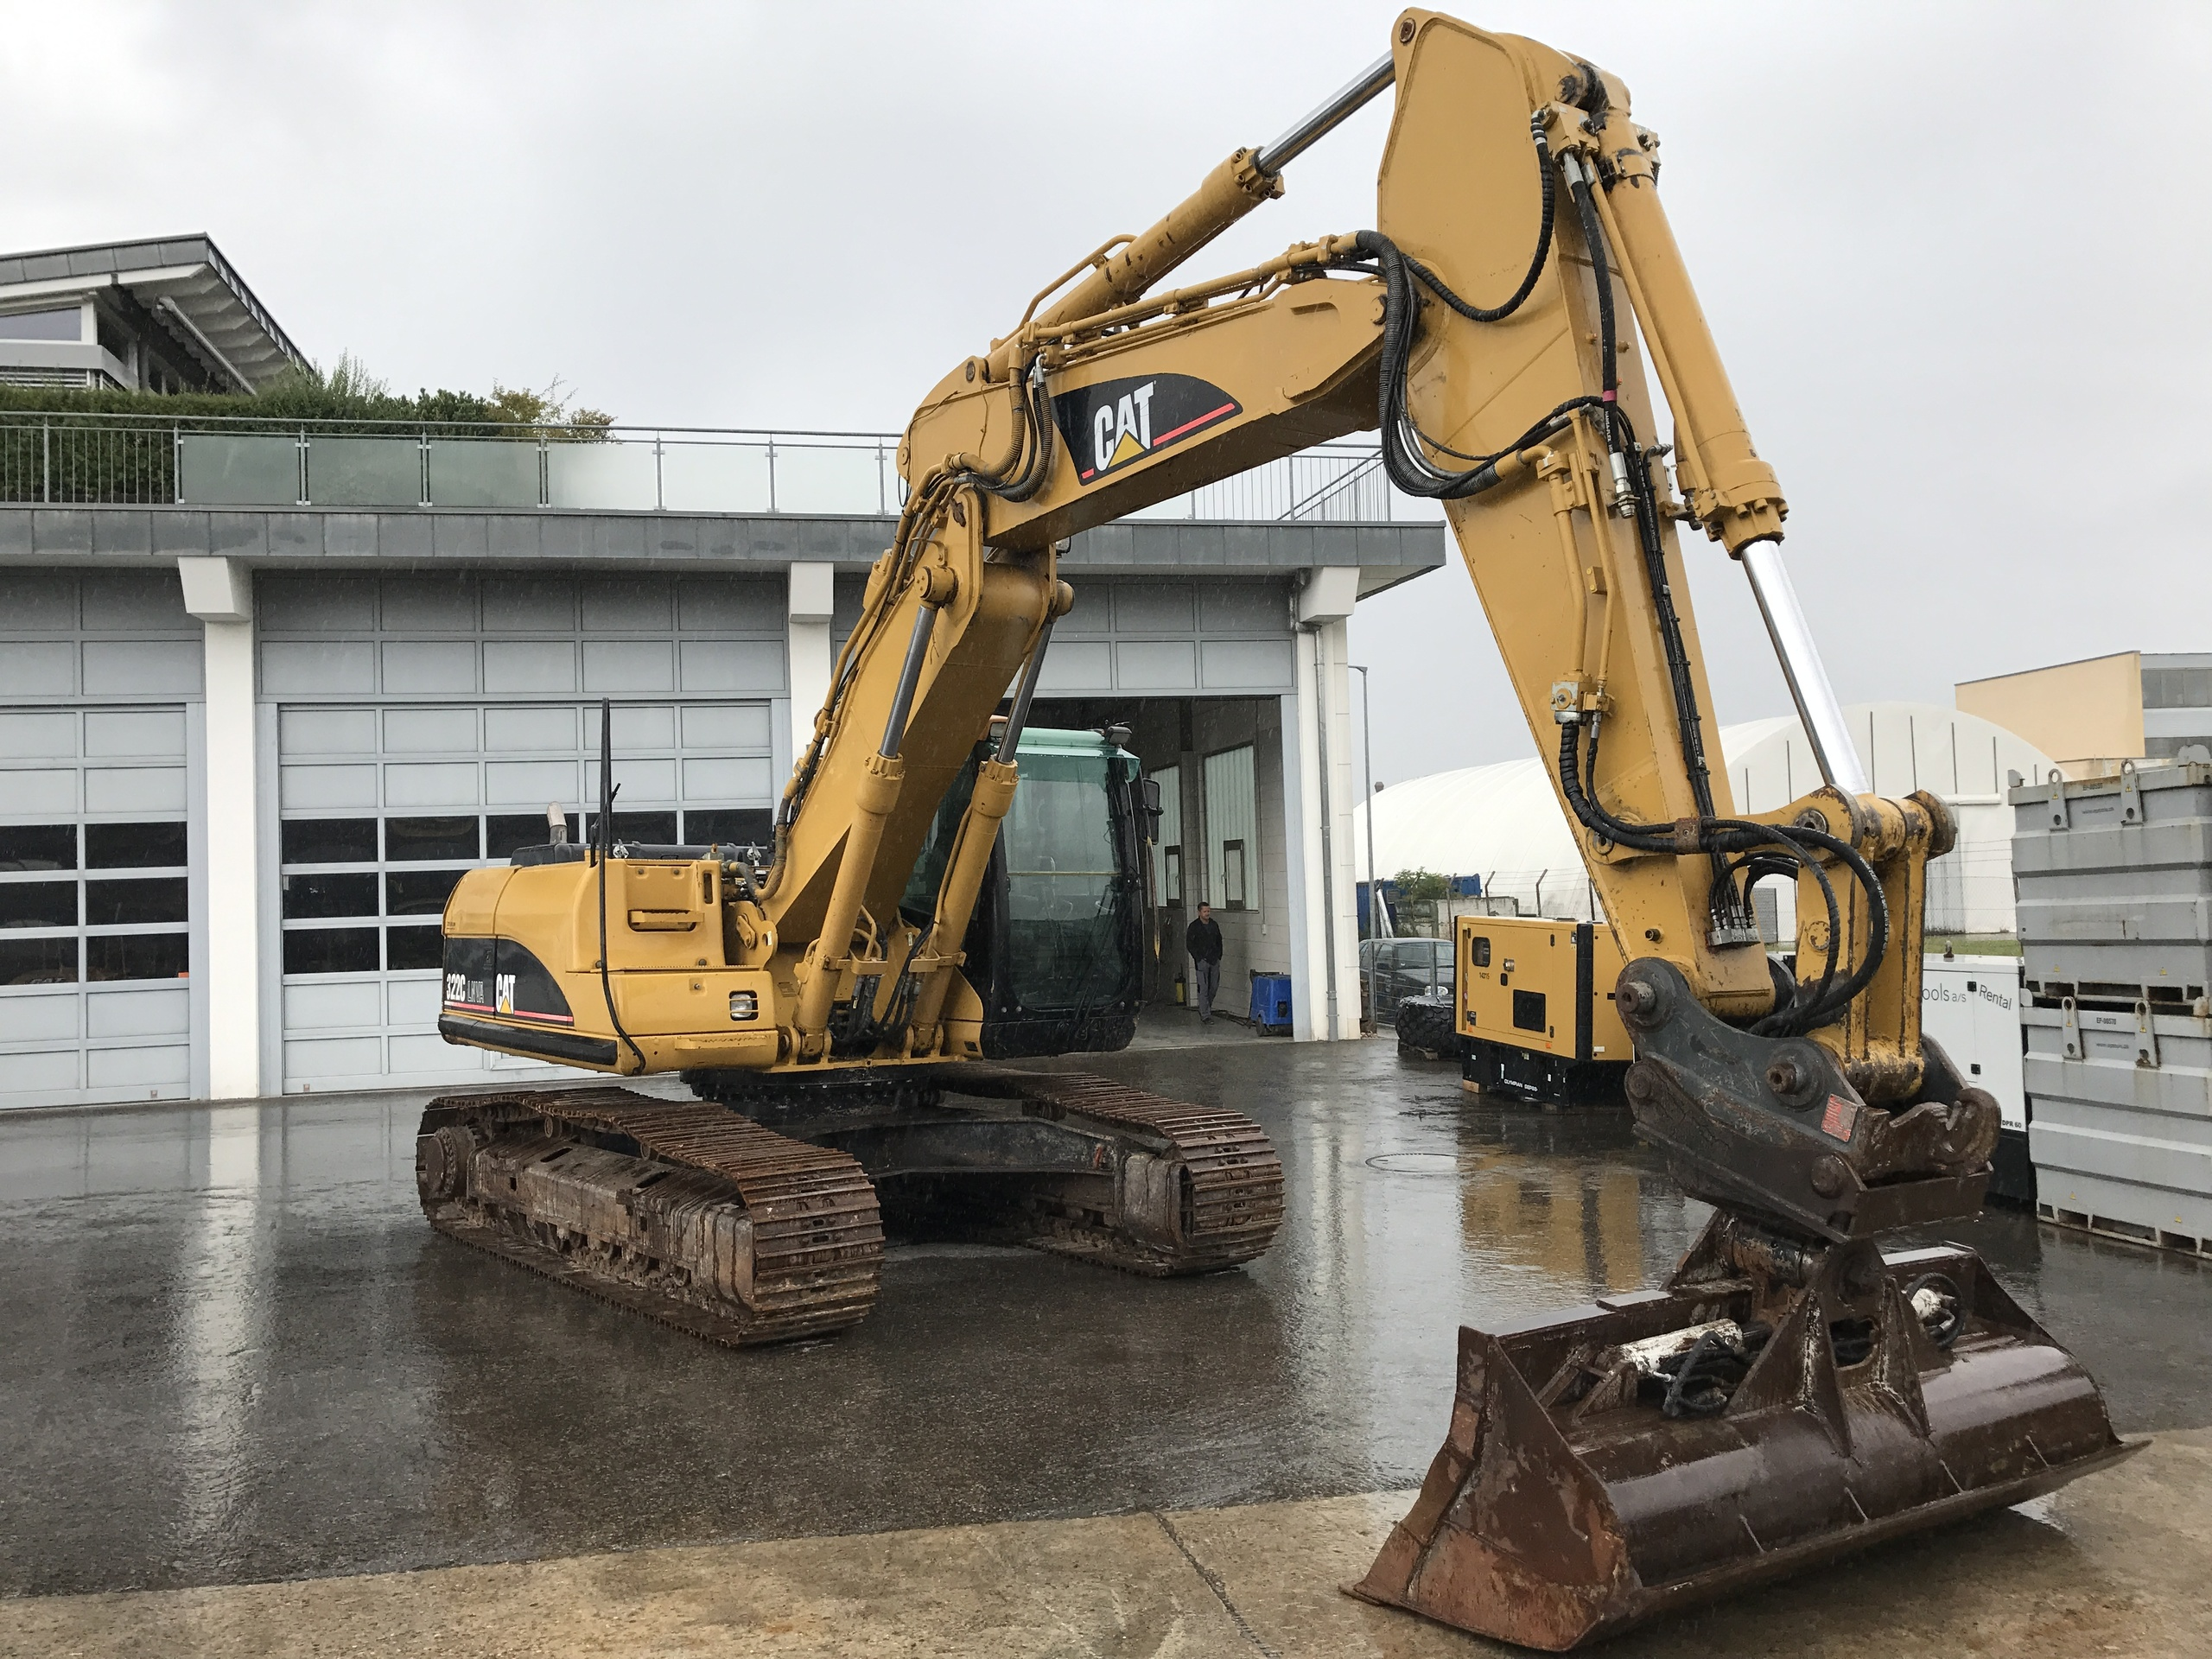 2005 - Caterpillar 322CL